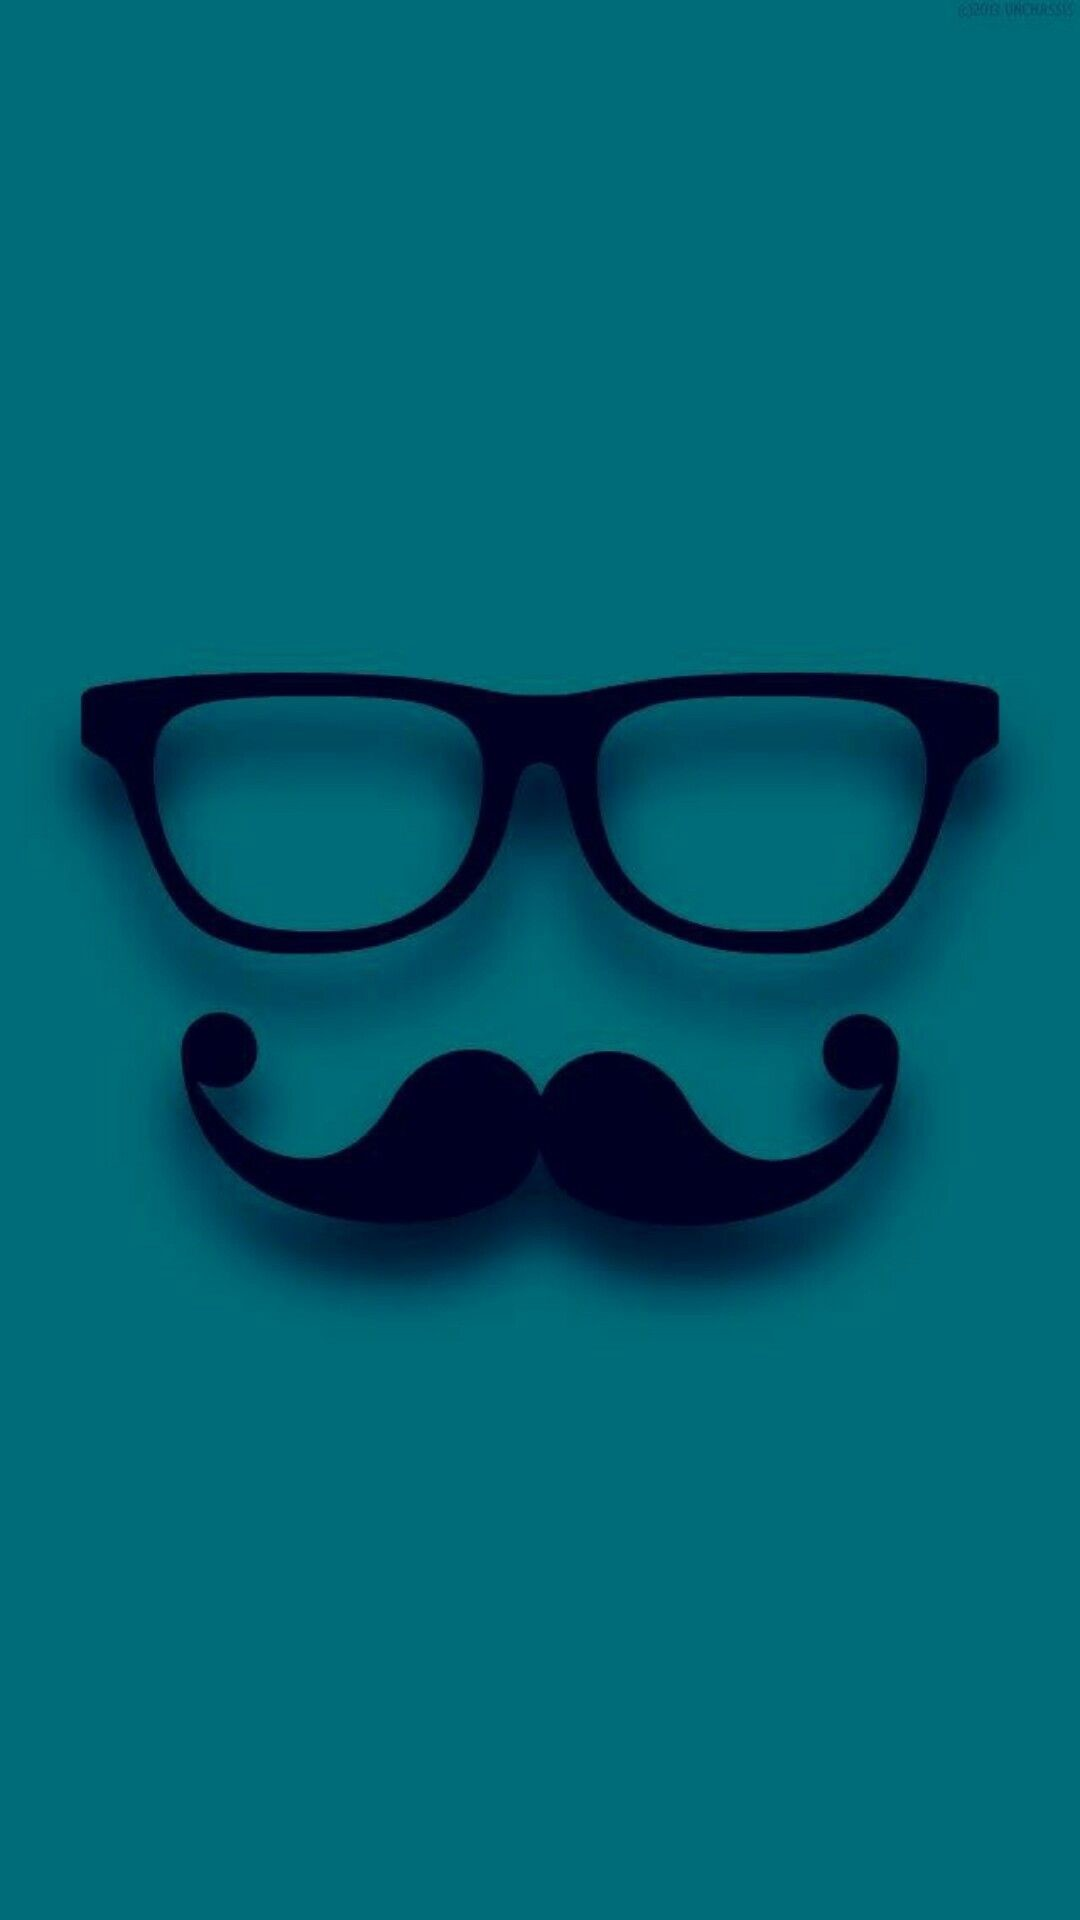 1080x1920 Lentes y bigote perfect Wallpaper Iphone Cute, Emoji Wallpaper, Cellphone  Wallpaper, Cool Wallpaper